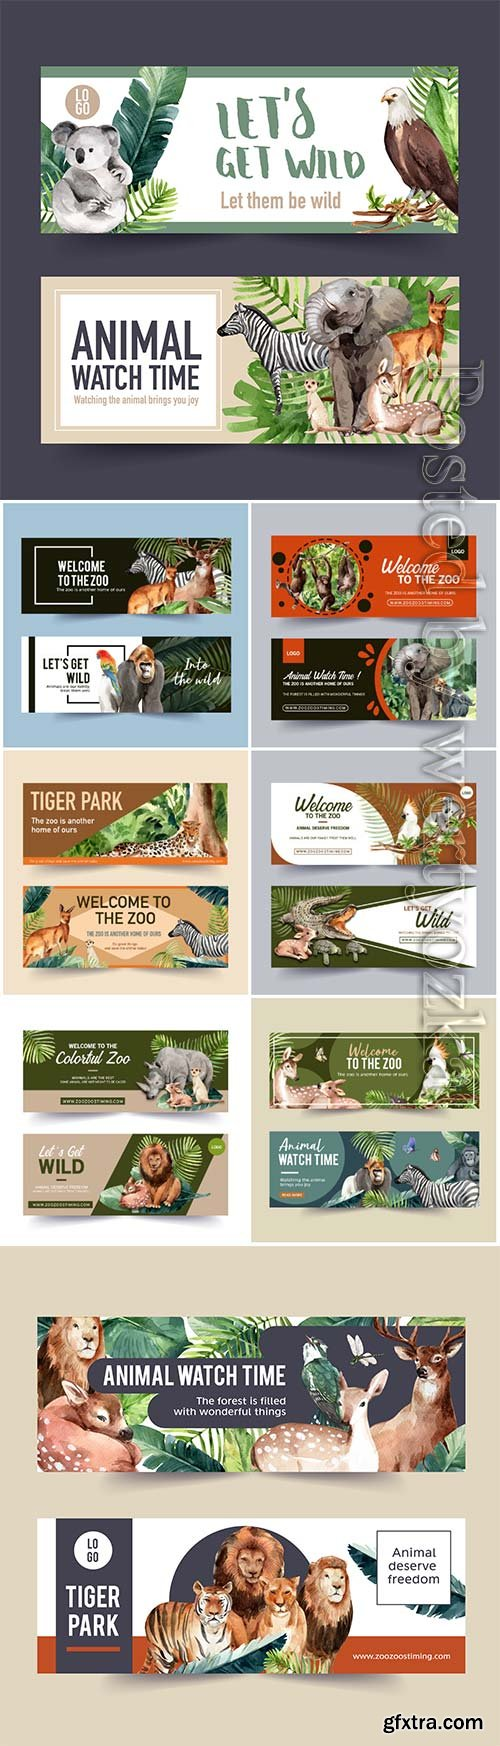 Zoo banner design with tiger, lion, deer watercolor illustration